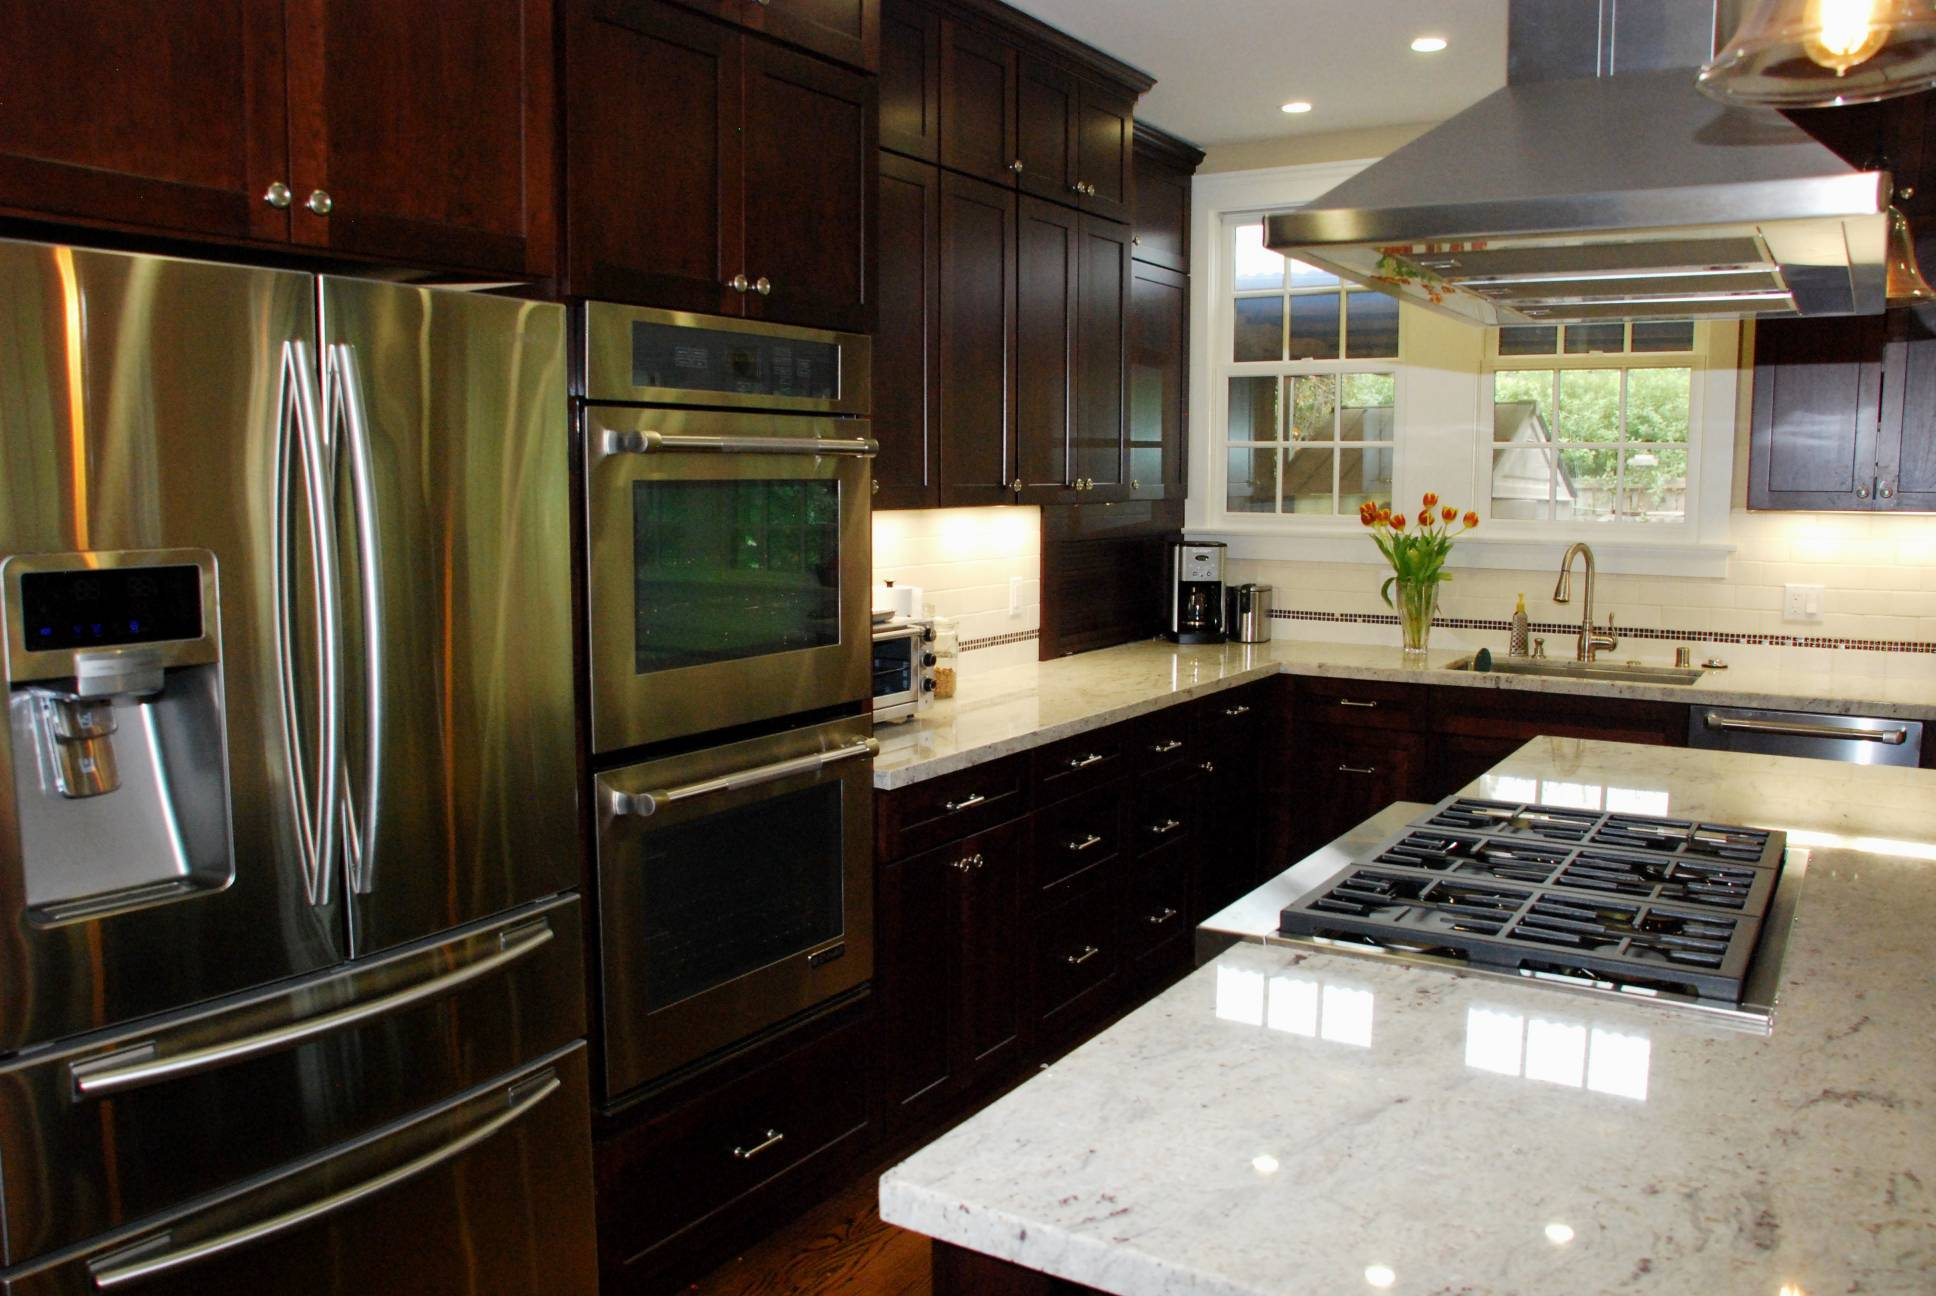 Kitchen with dark cabinets, Architect work, Interior design work, Palo Alto